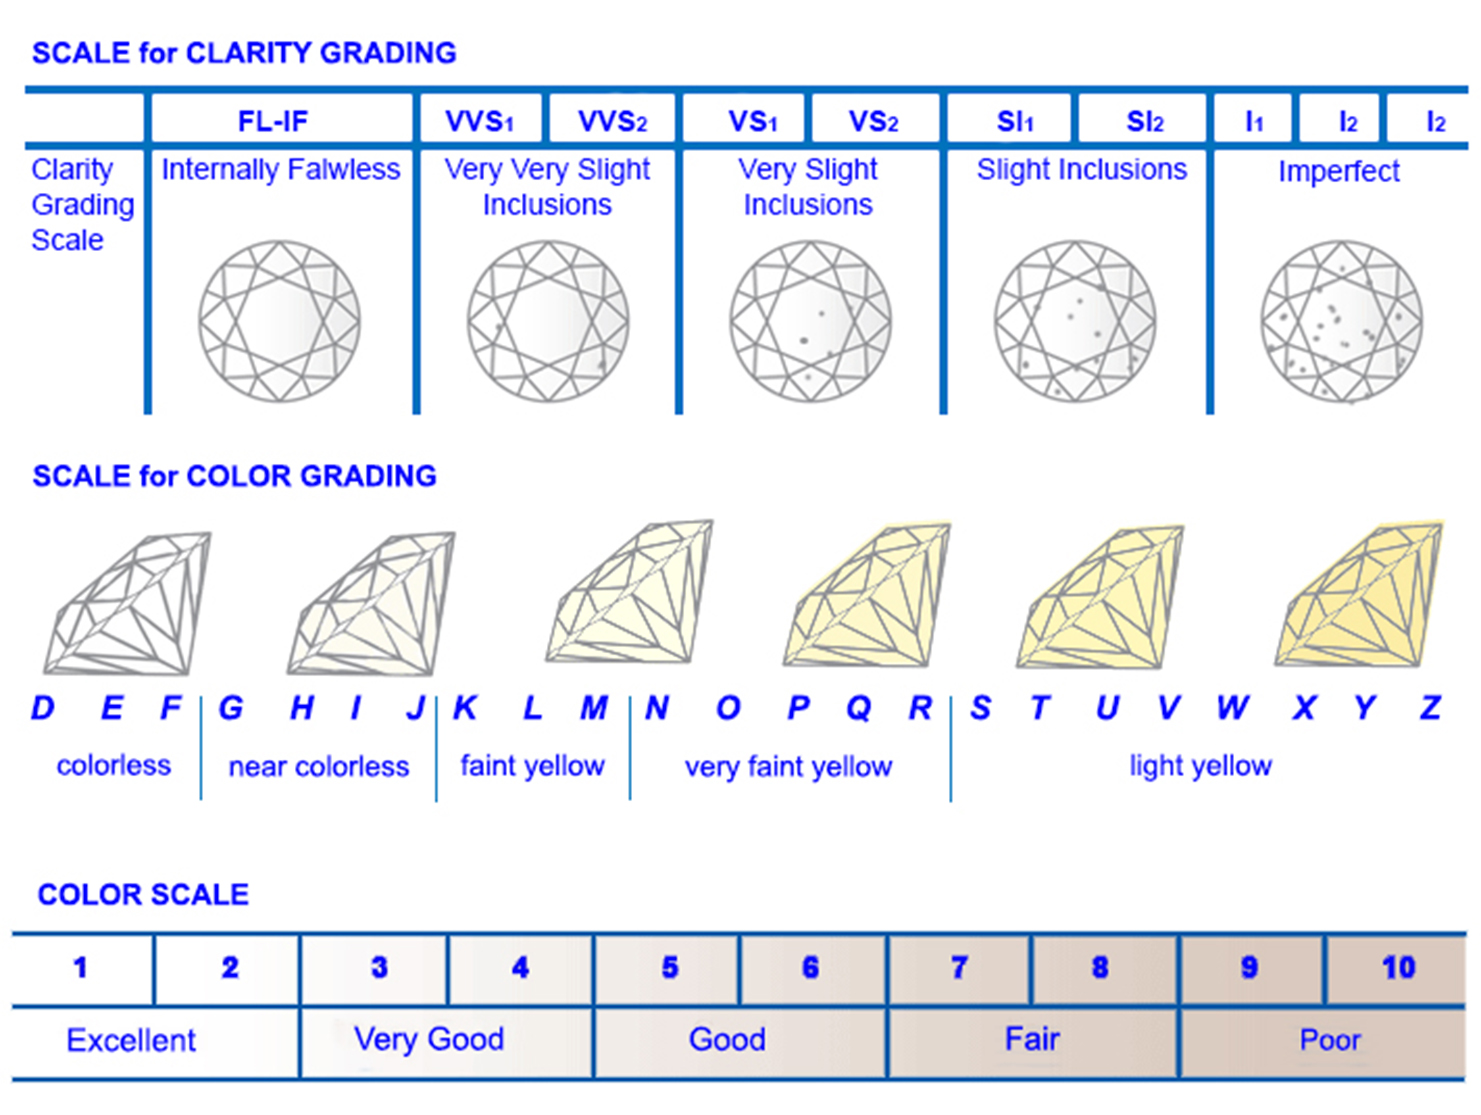 Gd clarity scale x2 los angeles diamond buyerlos angeles diamond los angeles diamond buyer is a family business located in the famous jewelry district in downtown los angeles was founded by mike poors in 1980 nvjuhfo Images